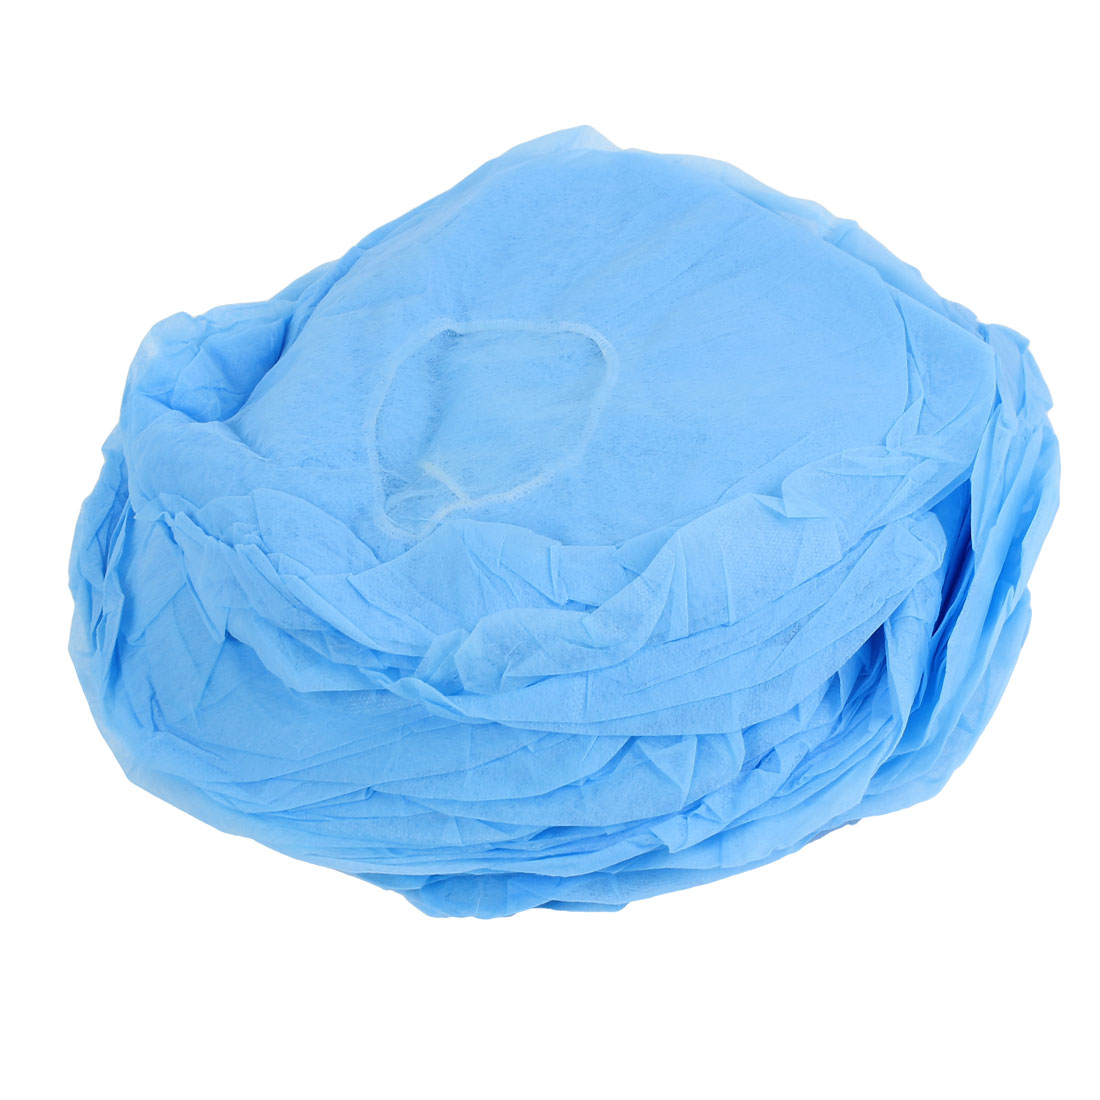 100Pcs Blue Stretchy Band Round Bouffant SPA Hair Salon Anti Dust Disposable Hat Cap